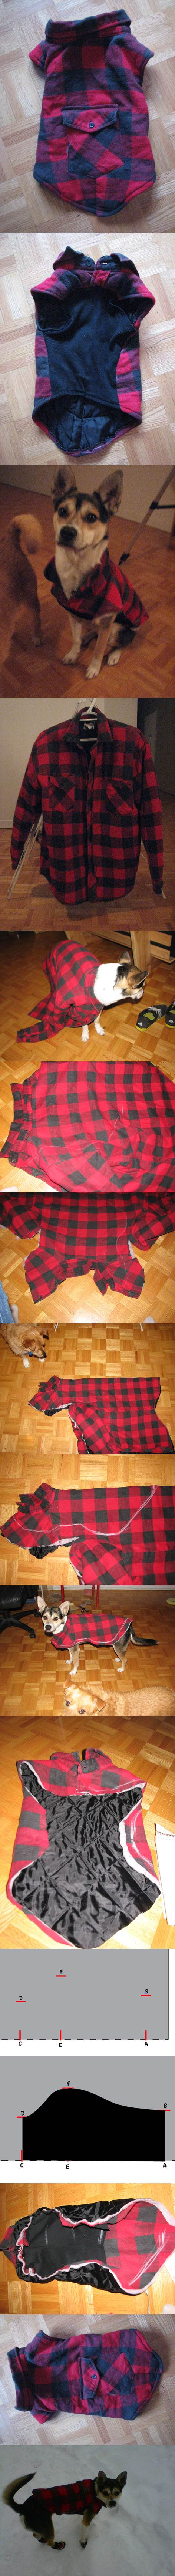 DIY Dog Winter Jacket from Old Shirt 2